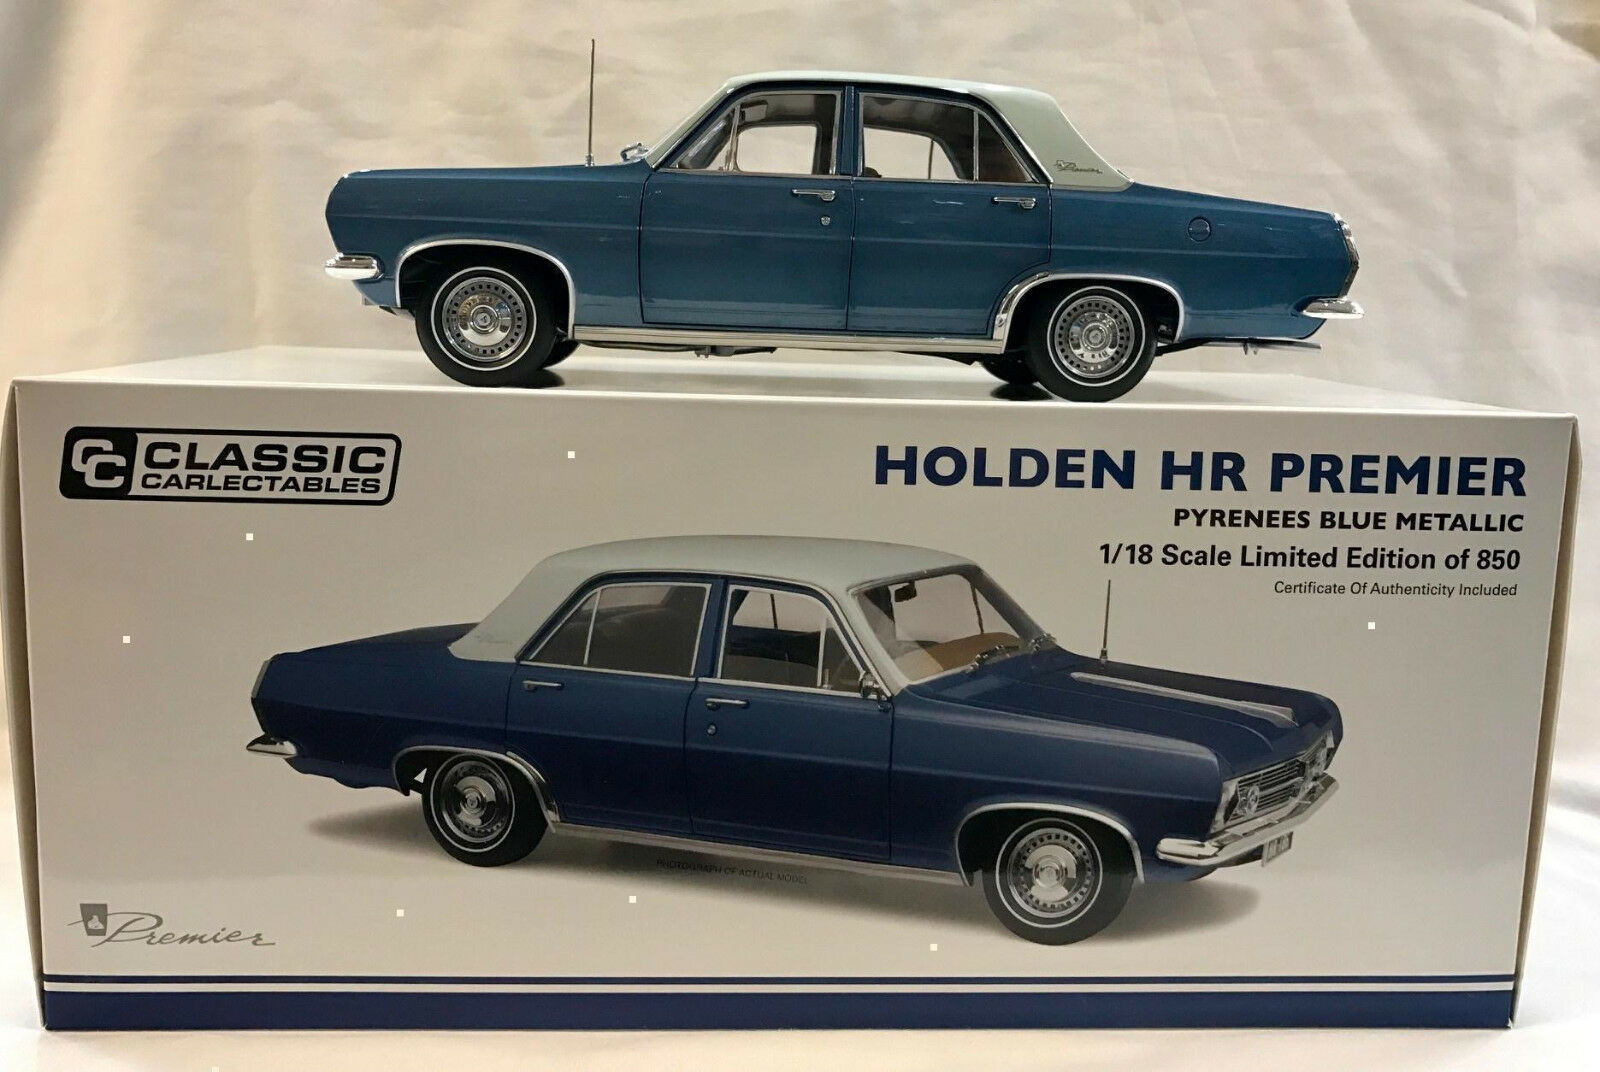 37514 HR PREMIER HOLDEN PYRENEES blueE METALLIC 1 18 DIE CAST MODEL CAR